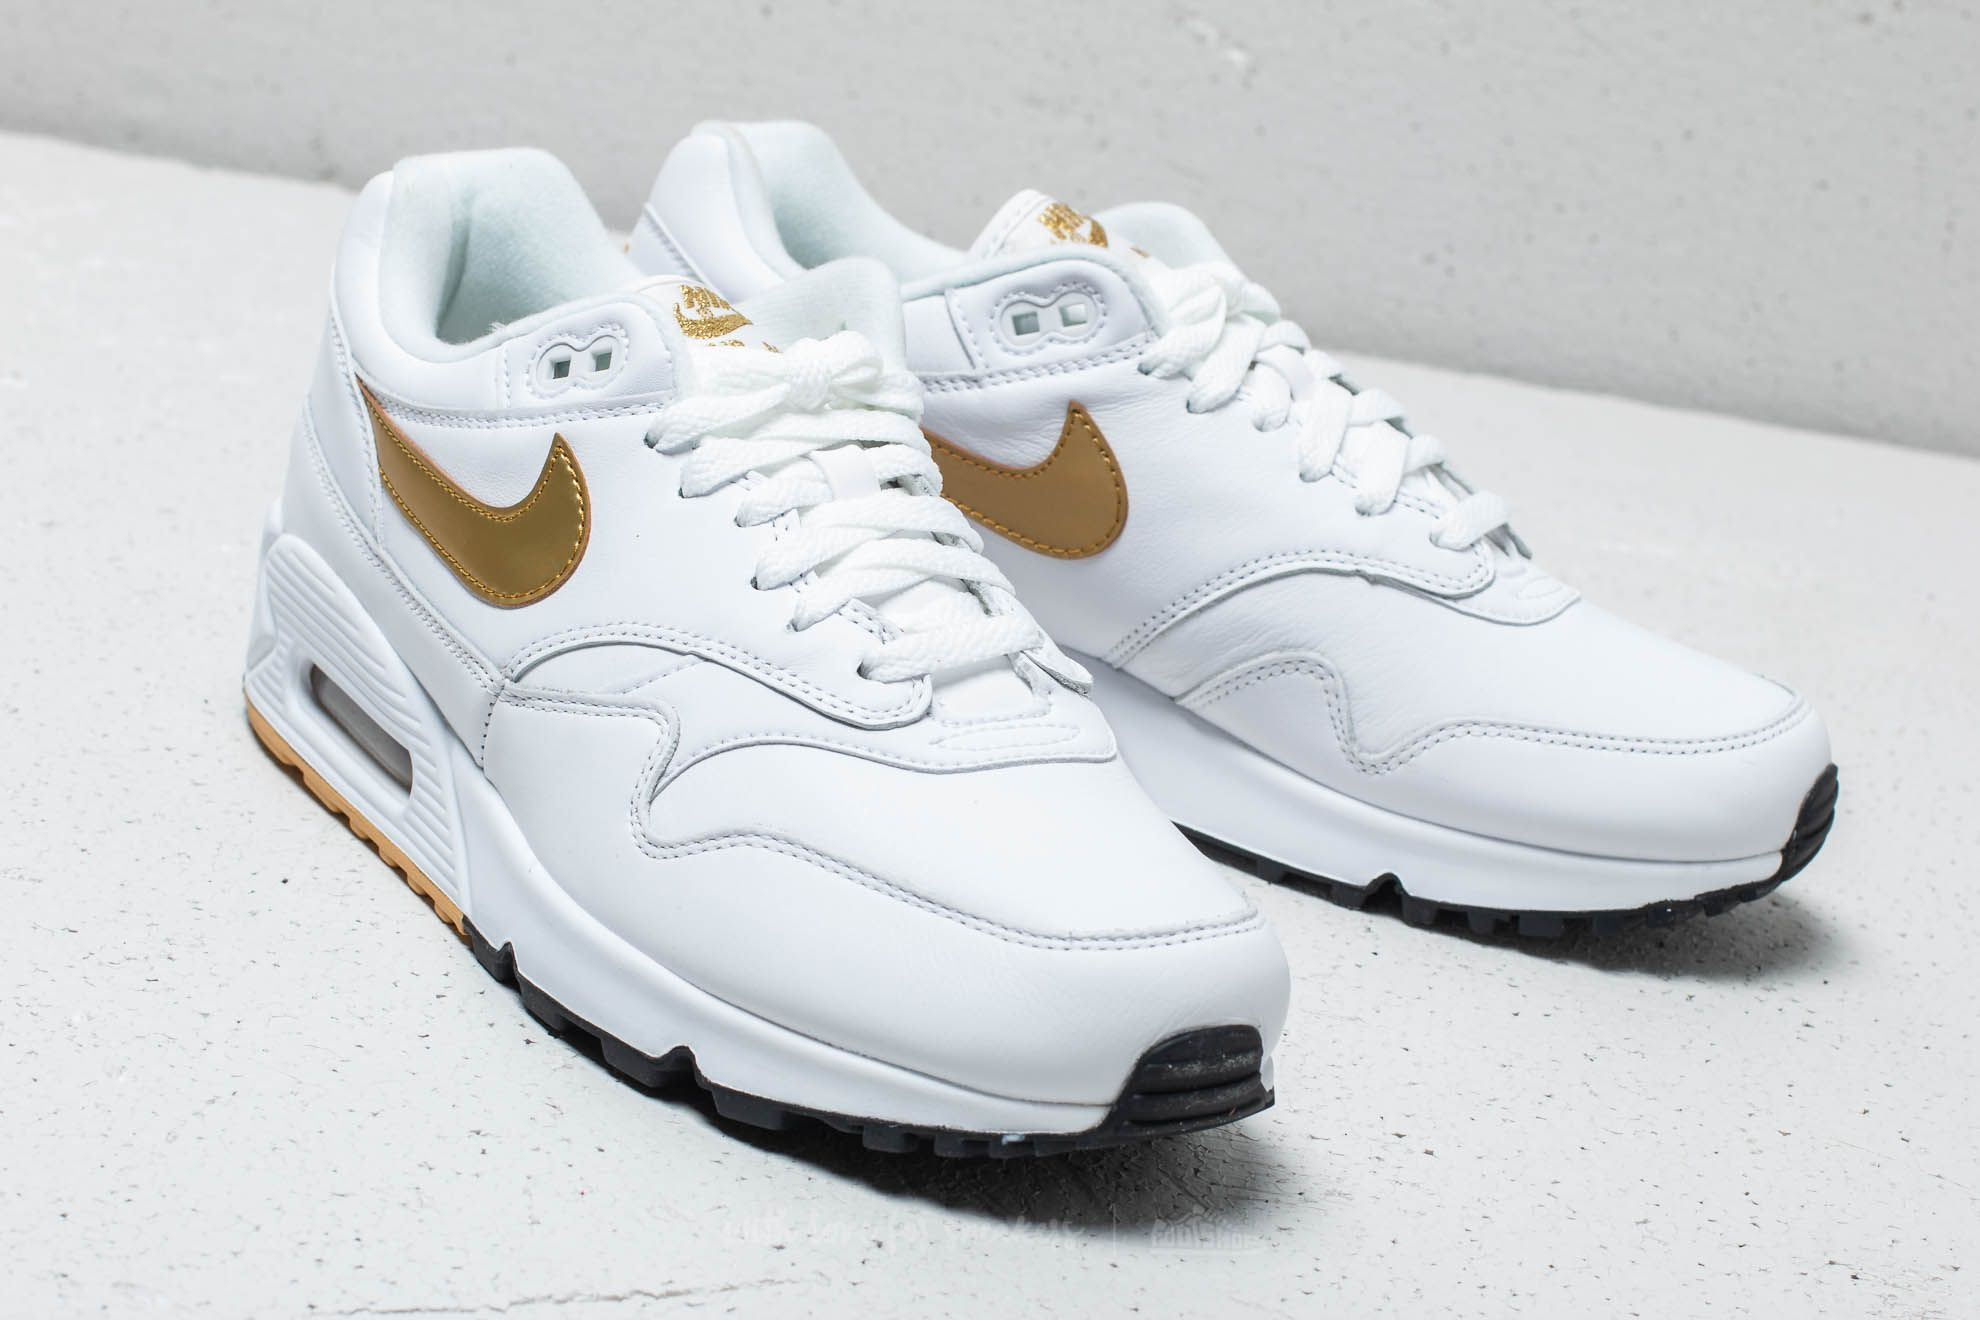 on sale dcefc 2979f ... store nike air max 90 1 white metallic gold black at a great price  8de17 0f663